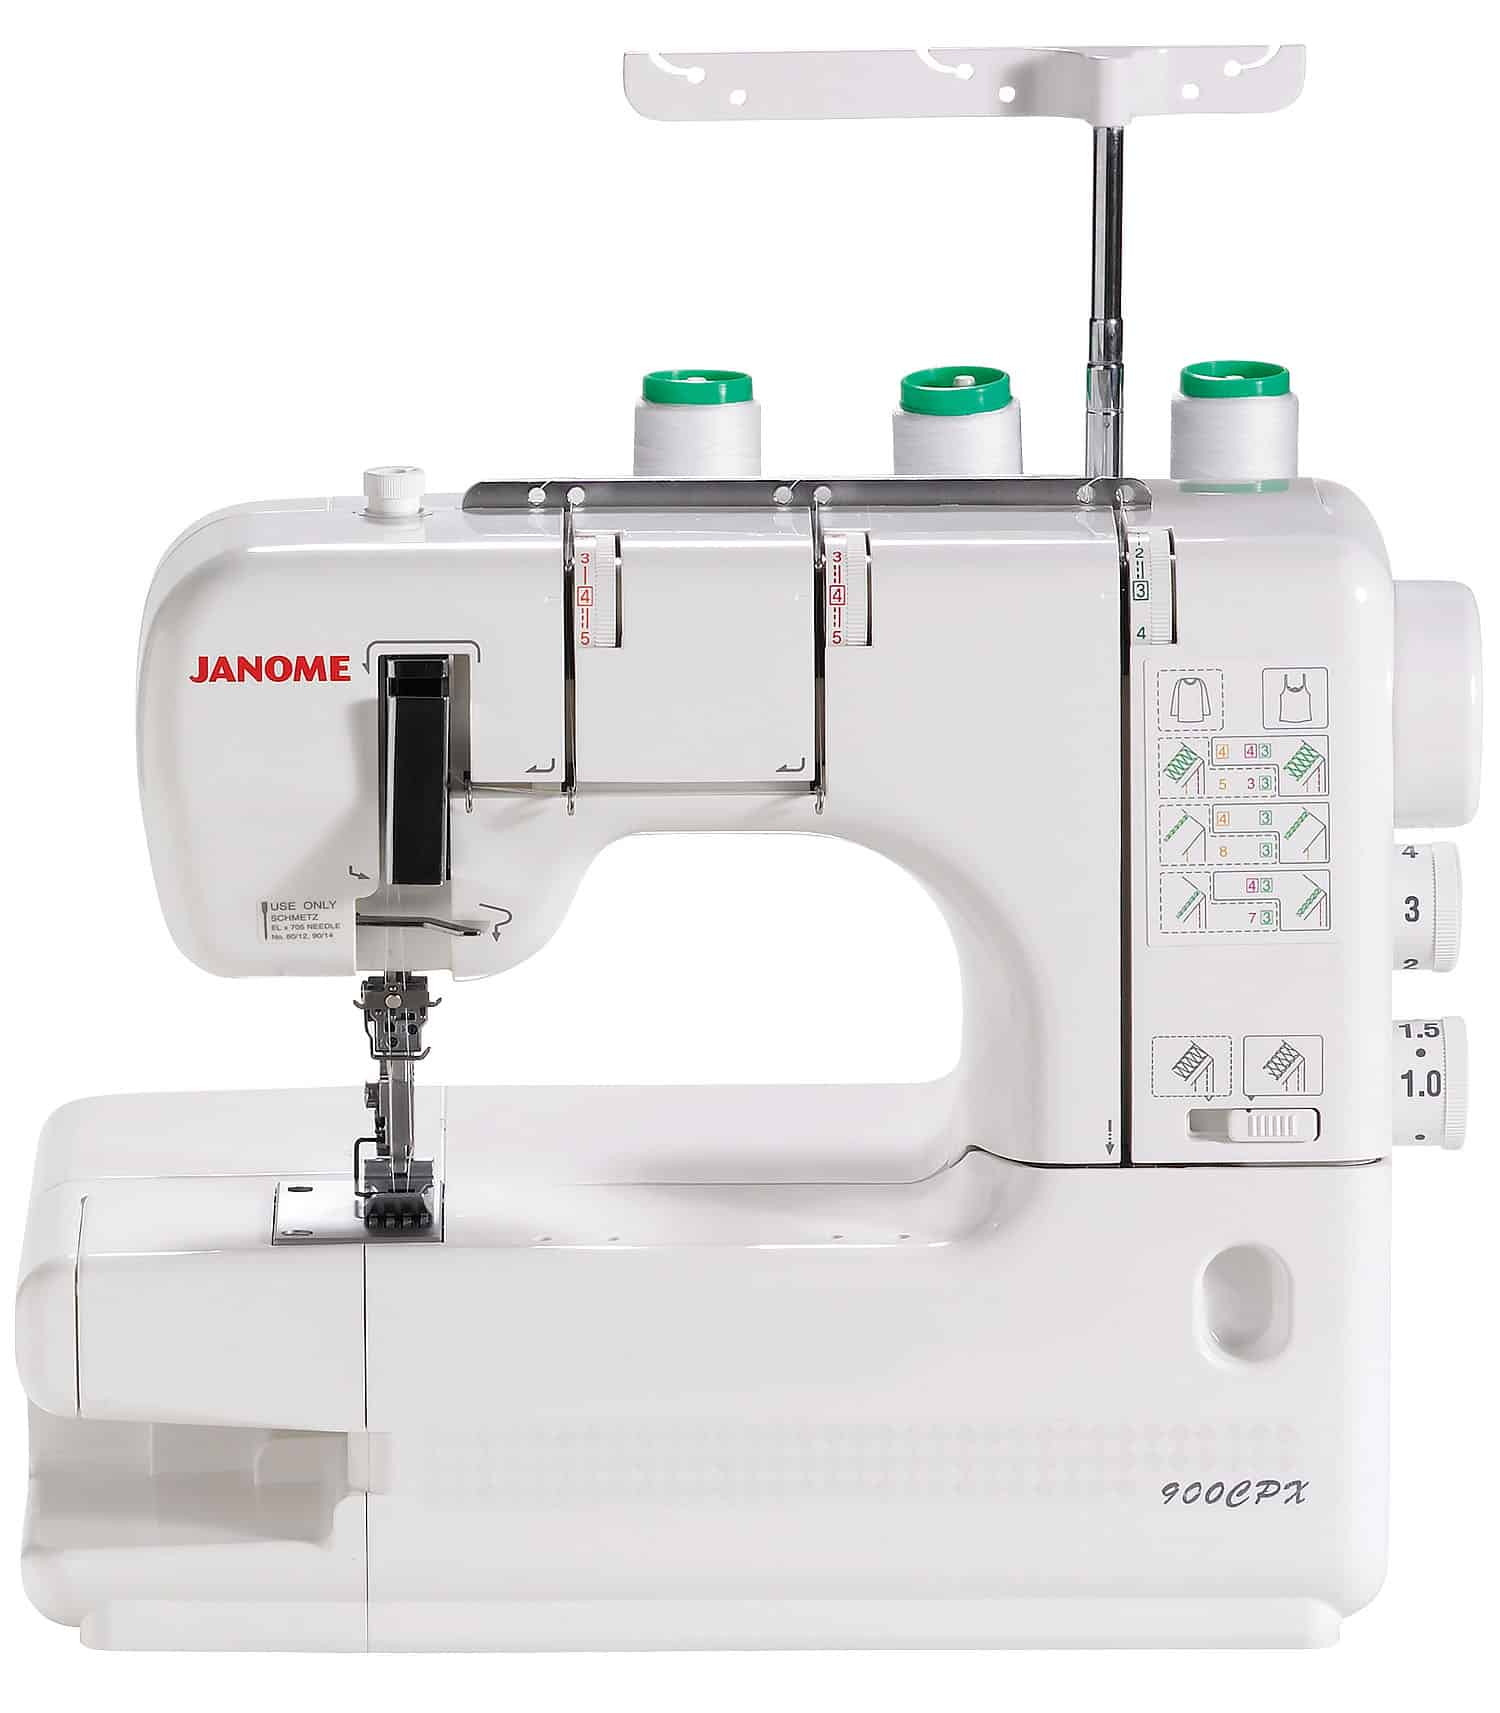 Guide to buying a coverstitch machine